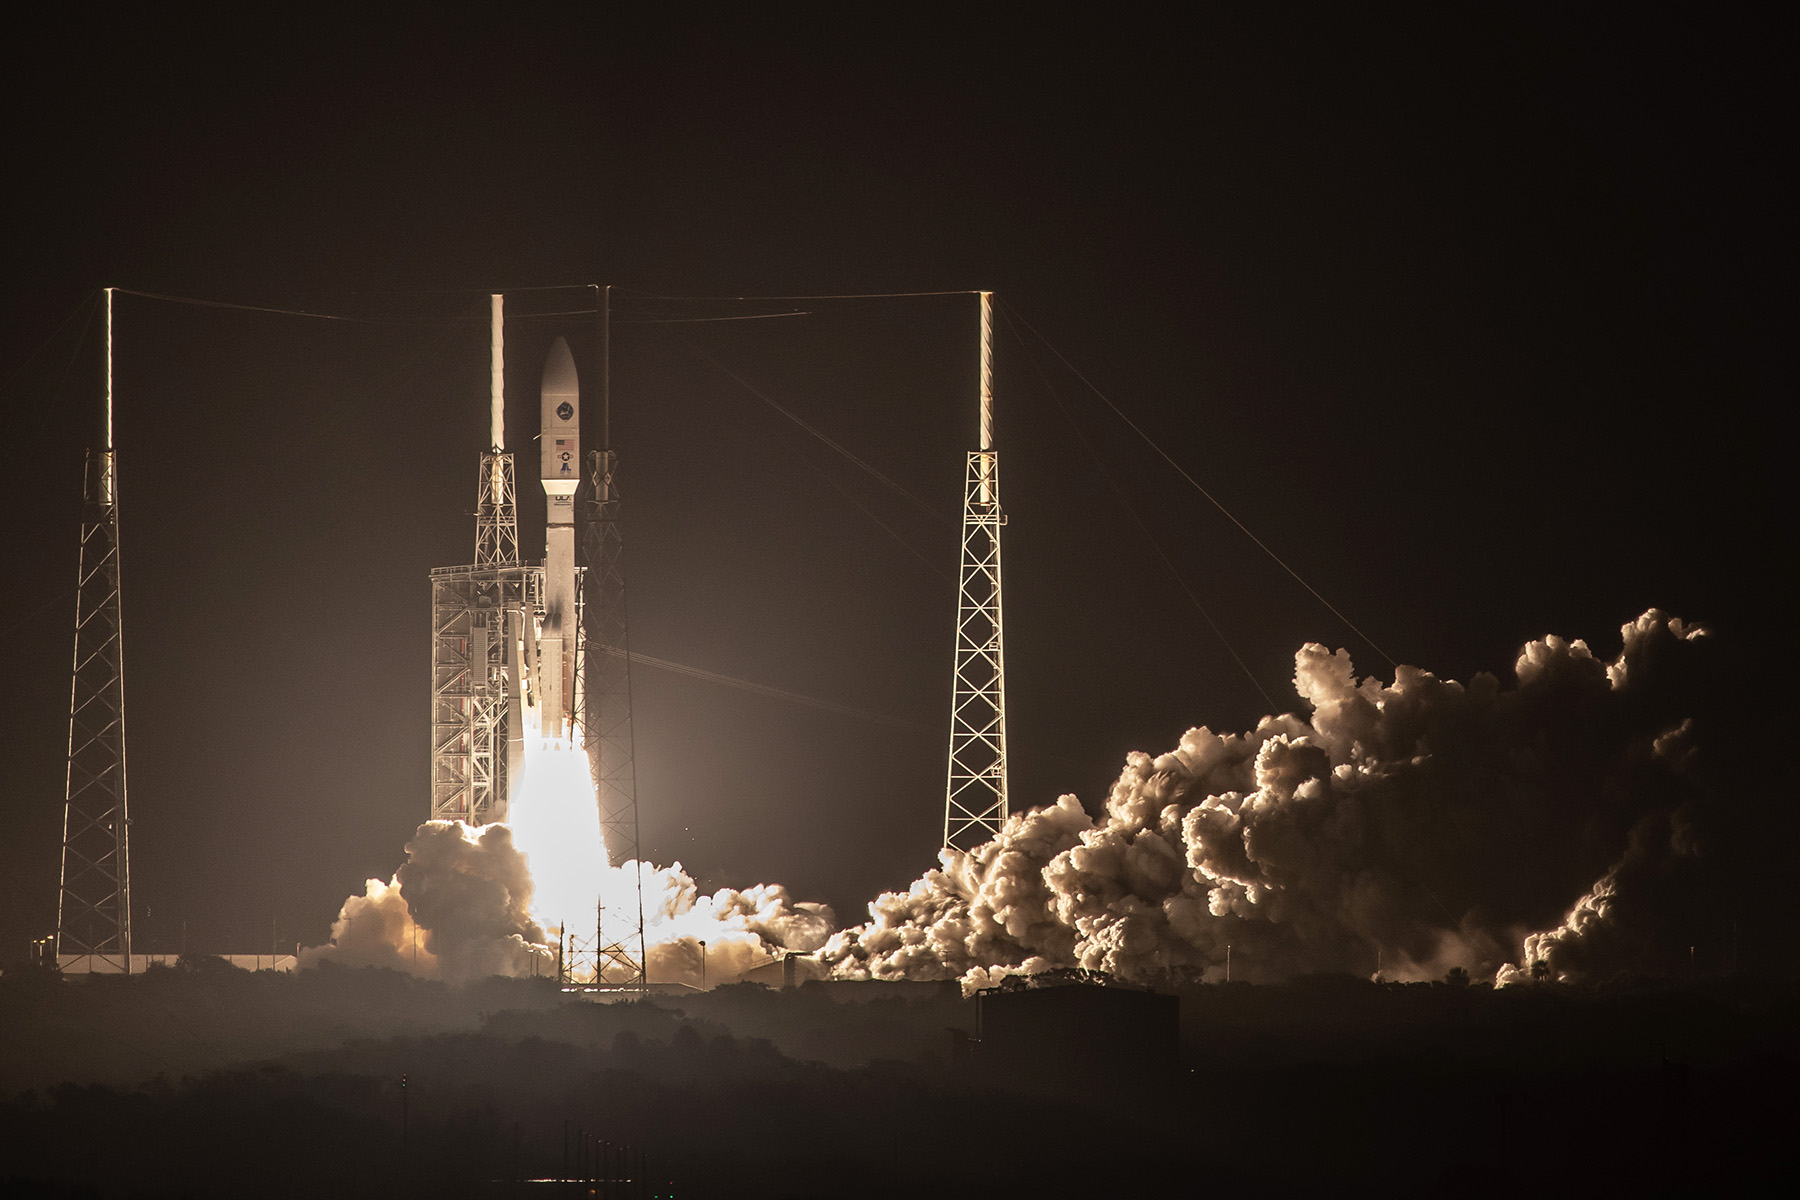 An Atlas V rocket launches a satellite for the U.S. Air Force from Cape Canaveral Air Force Station in Florida in the early morning hours of Oct. 17. President Trump plans to sign an executive order to create a U.S. Space Command. (United Launch Alliance)